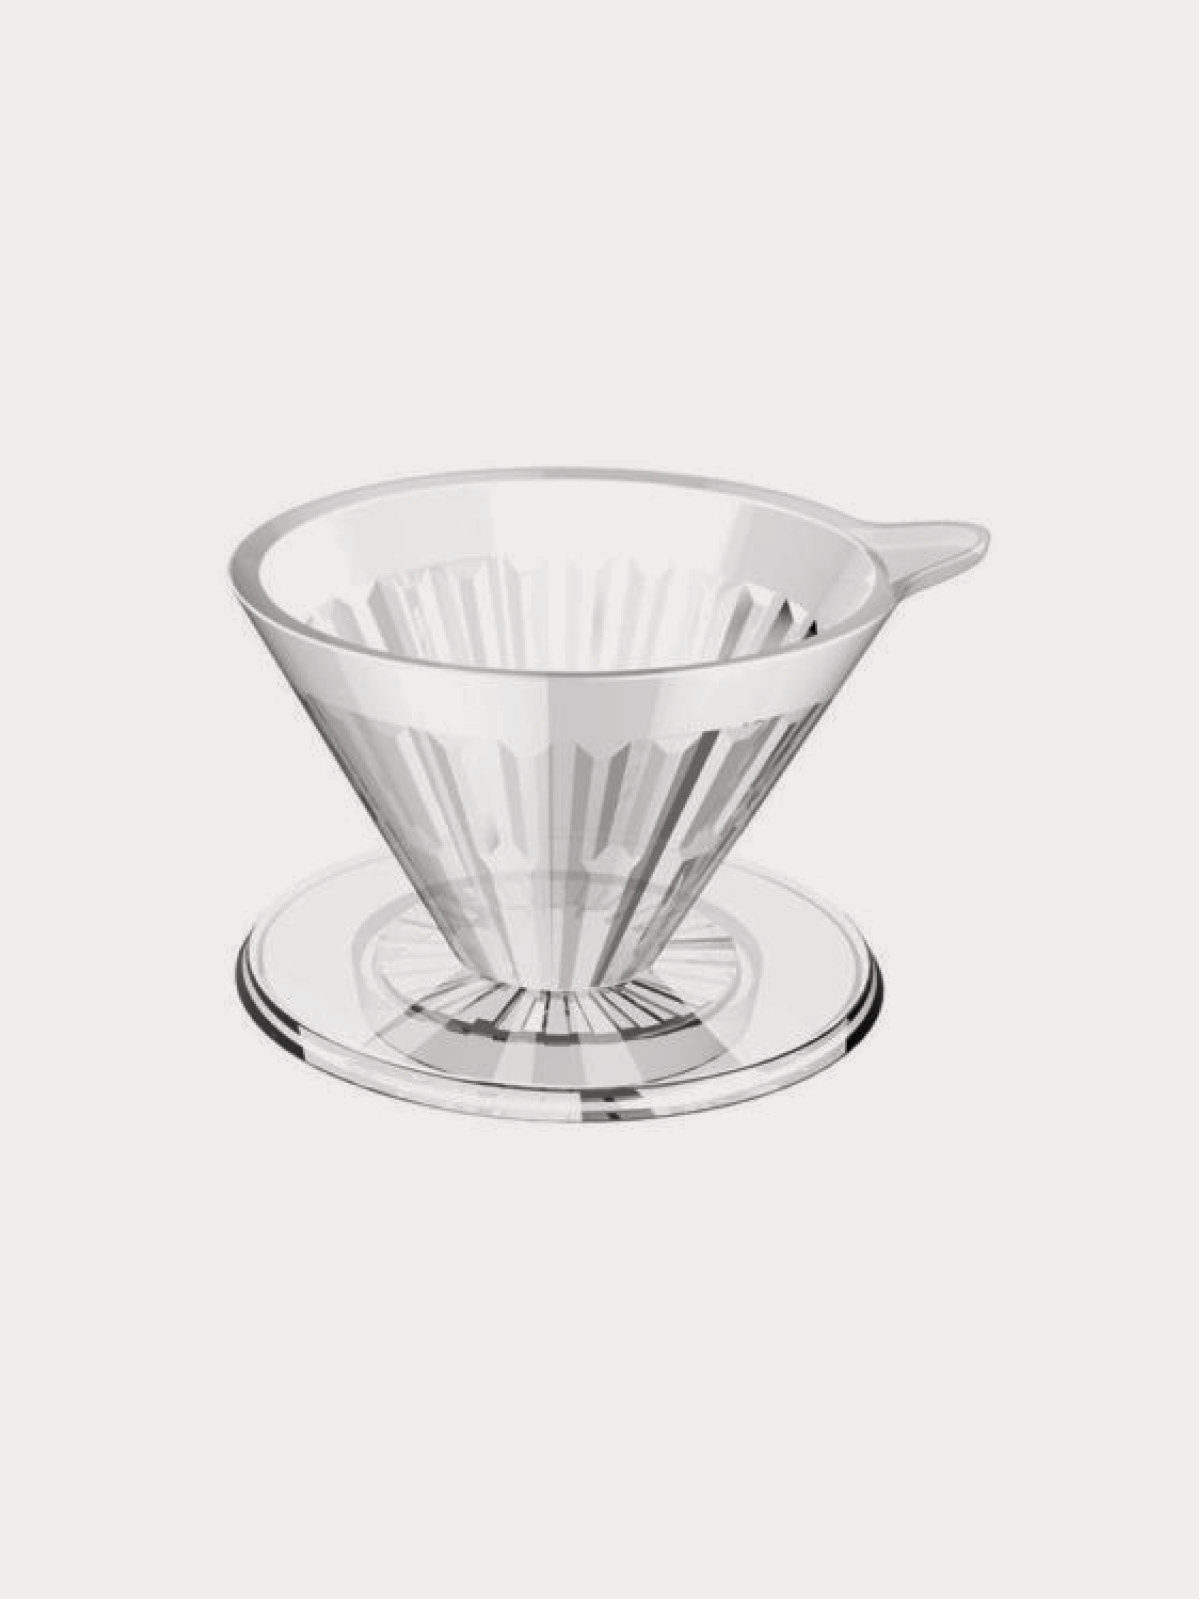 Timemore Crystal Eye Dripper - PCTG 02